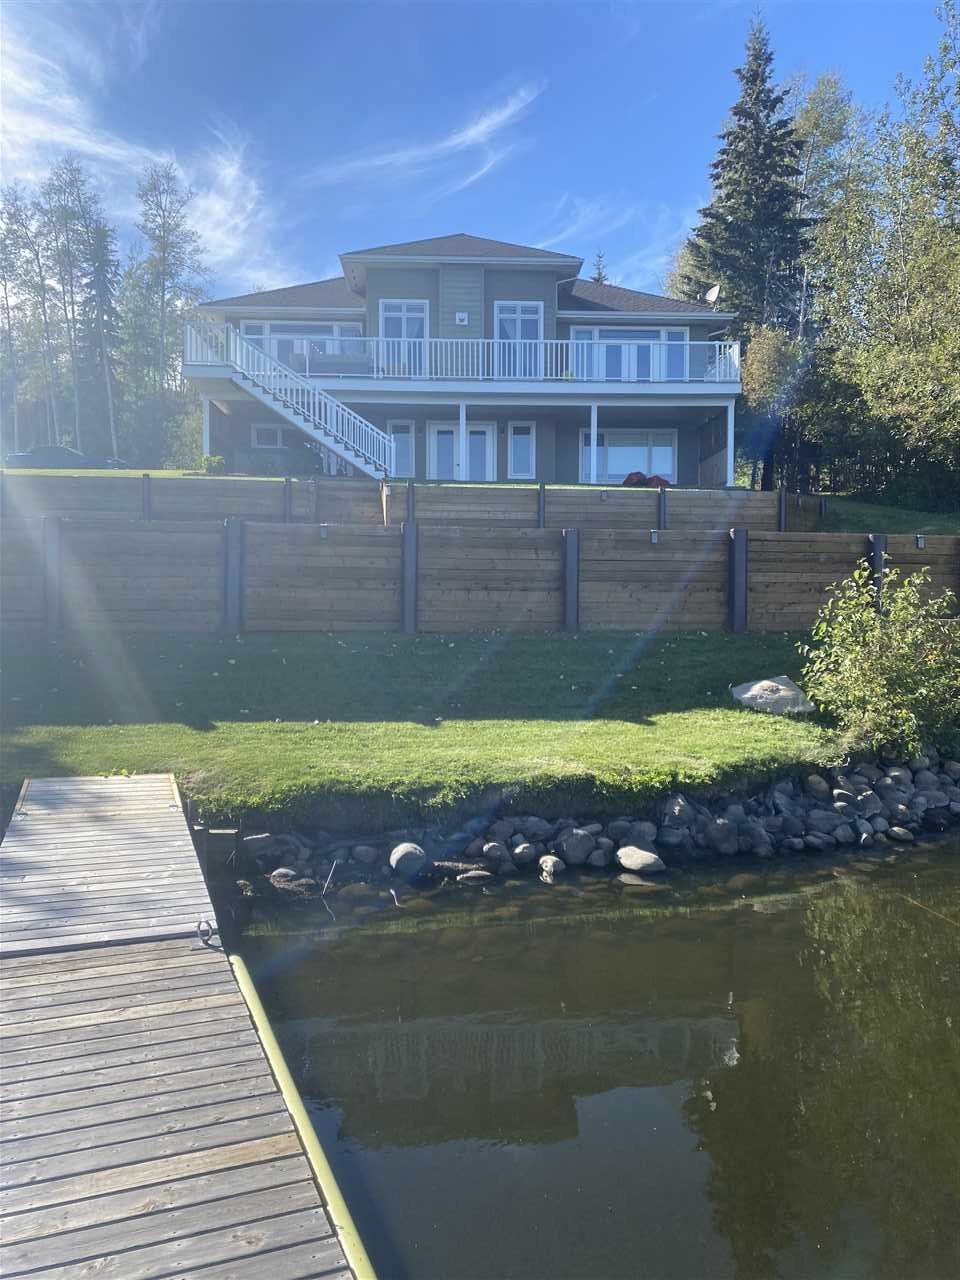 "Photo 1: Photos: 13785 GOLF COURSE Road: Charlie Lake House for sale in ""GOLF COURSE ROAD"" (Fort St. John (Zone 60))  : MLS®# R2530342"